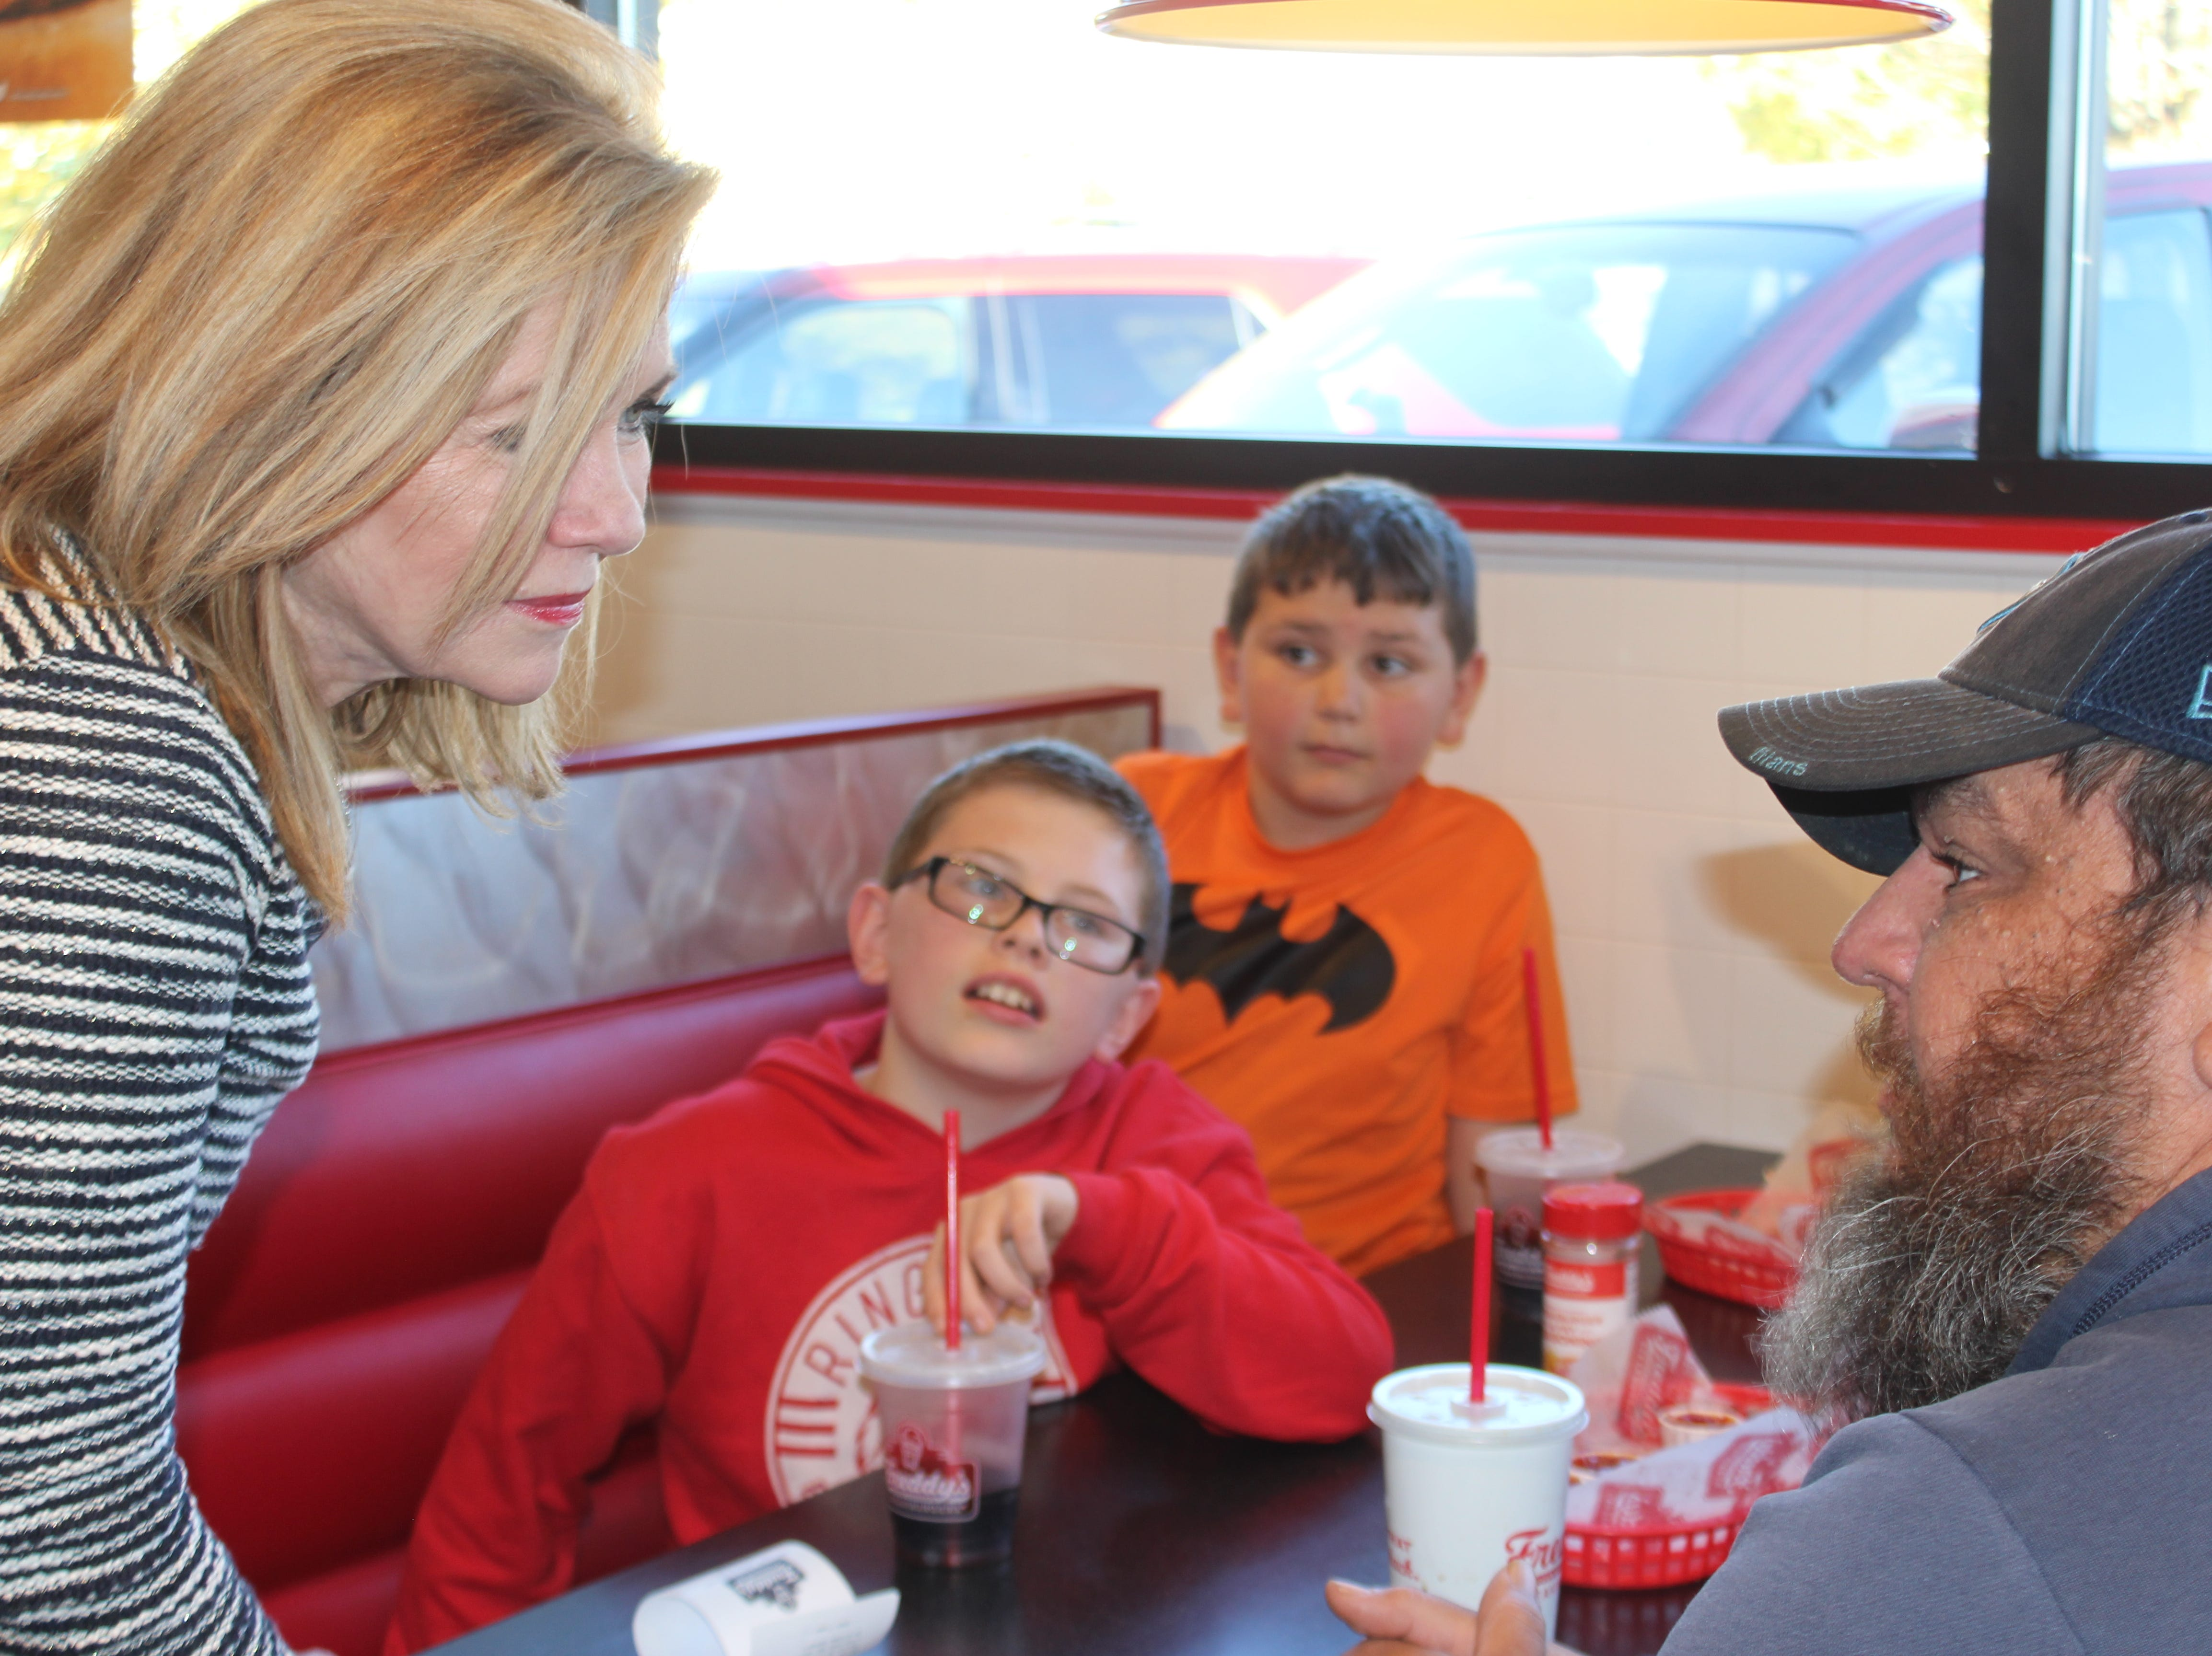 Republican Rep. Marsha Blackburn greets voters at the final stop of her campaign for Senate at Freddy's Steakburgers in Clarksville on Election Day, Nov. 6.